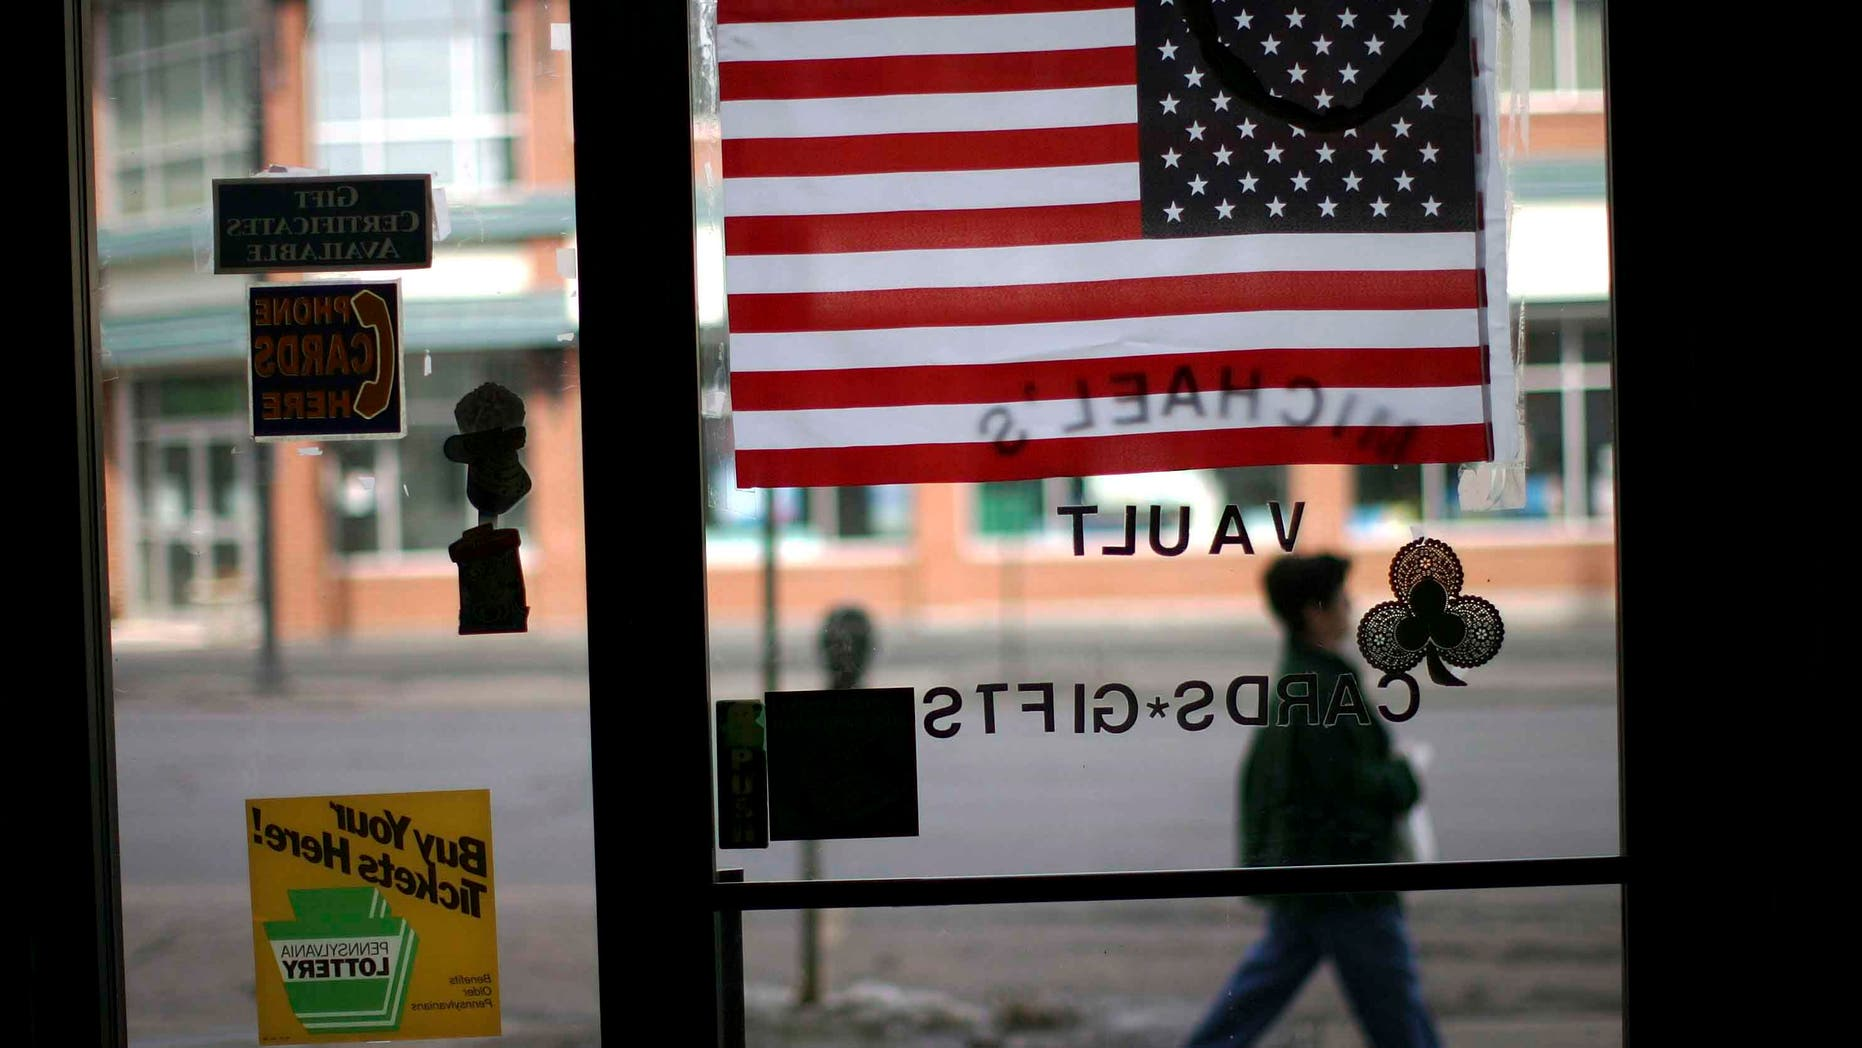 HAZLETON, PA - MARCH 14:  A woman walks pass an American flag in a store window March 14, 2007 in Hazleton, Pennsylvania. A new city ordinance in Hazleton has caused members of the large Latino community to fear discrimination and have concern for their future in the town. The city of Hazleton and its aggressive policy on illegal immigration is the subject of a federal trial that is being viewed nationally as a landmark case on immigration. In a move that caused outrage among Latino residents this past summer, city officials in Hazleton adopted ordinances that target illegal immigrants in housing, language use and employment. The ordinance, called the Illegal immigration Relief Act, has been put on hold while the case is challenged in federal court in Scranton by the American Civil Liberties Union and the Puerto Rican Legal Defense and Education Fund. At least 80 towns and cities across the nation have adopted similar measures against illegal immigrants.  (Photo by Spencer Platt/Getty Images)